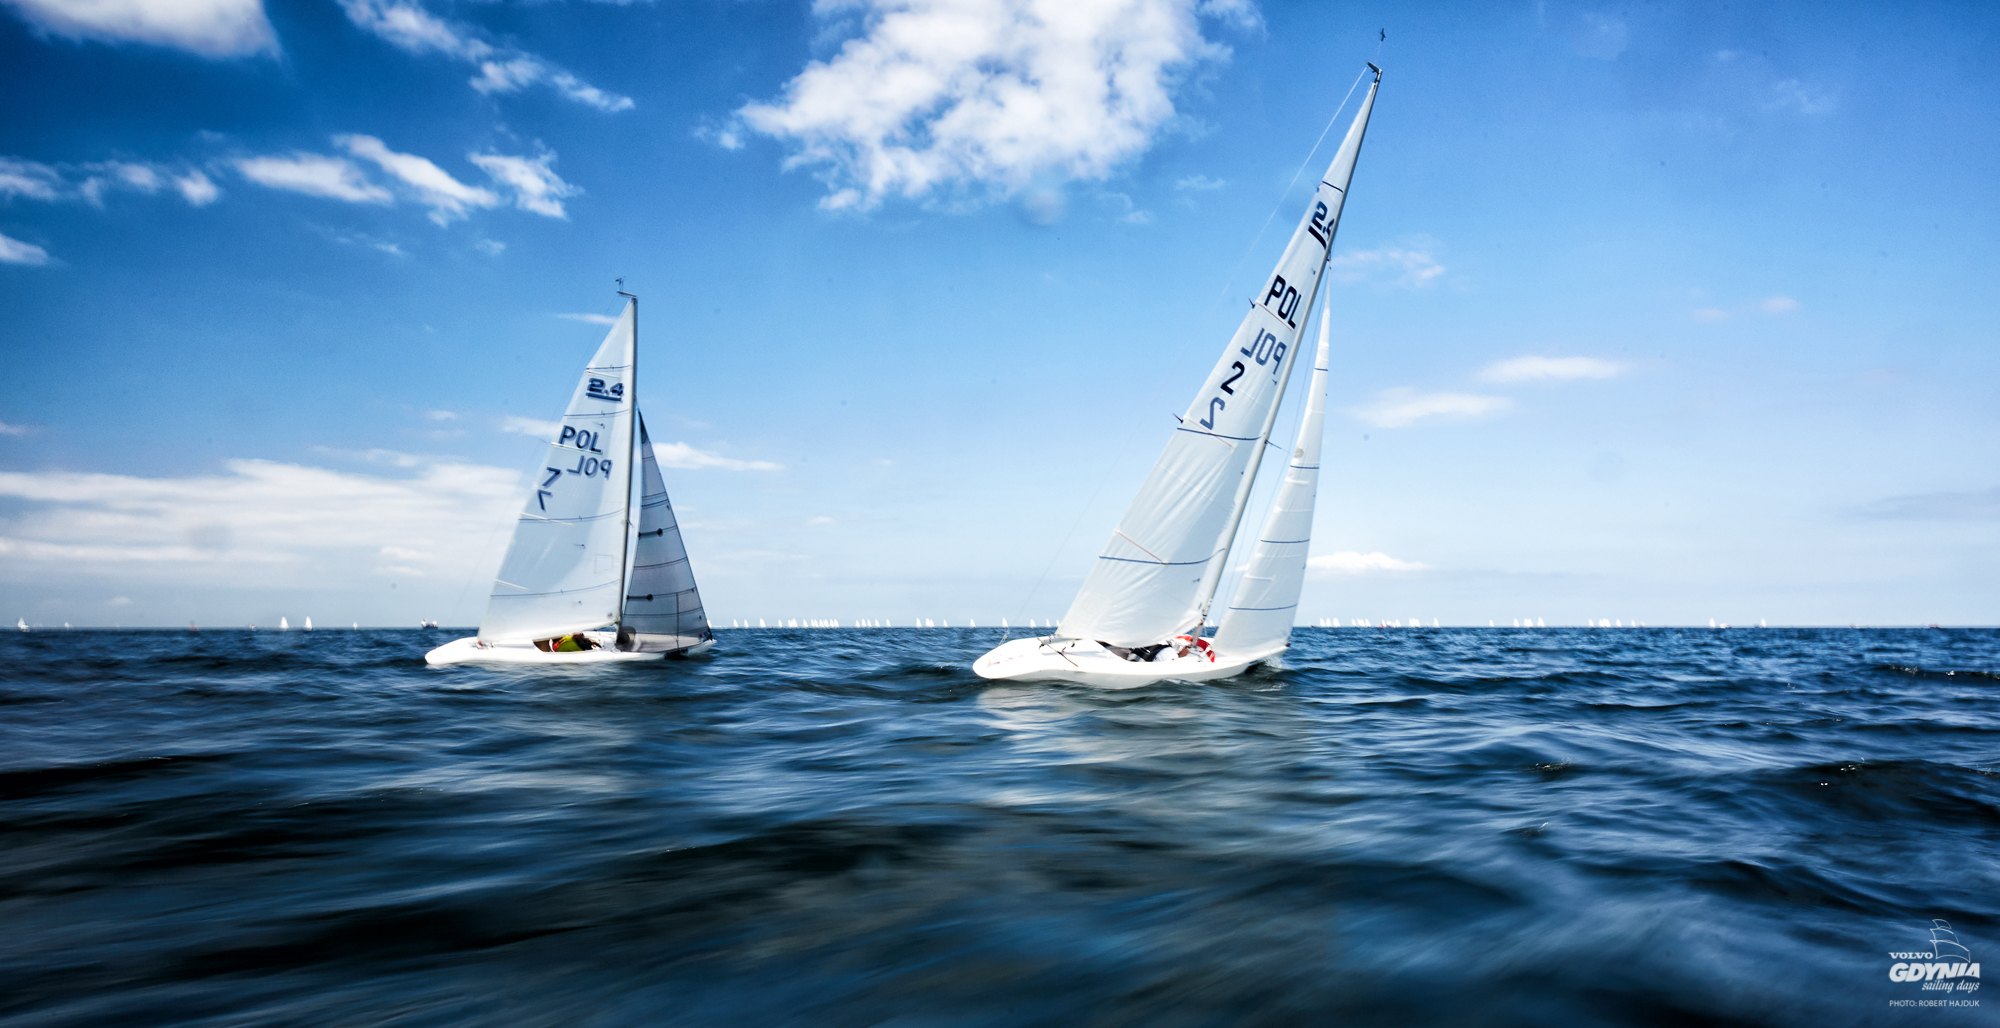 2021 EUROSAF Inclusive Sailing Events changed